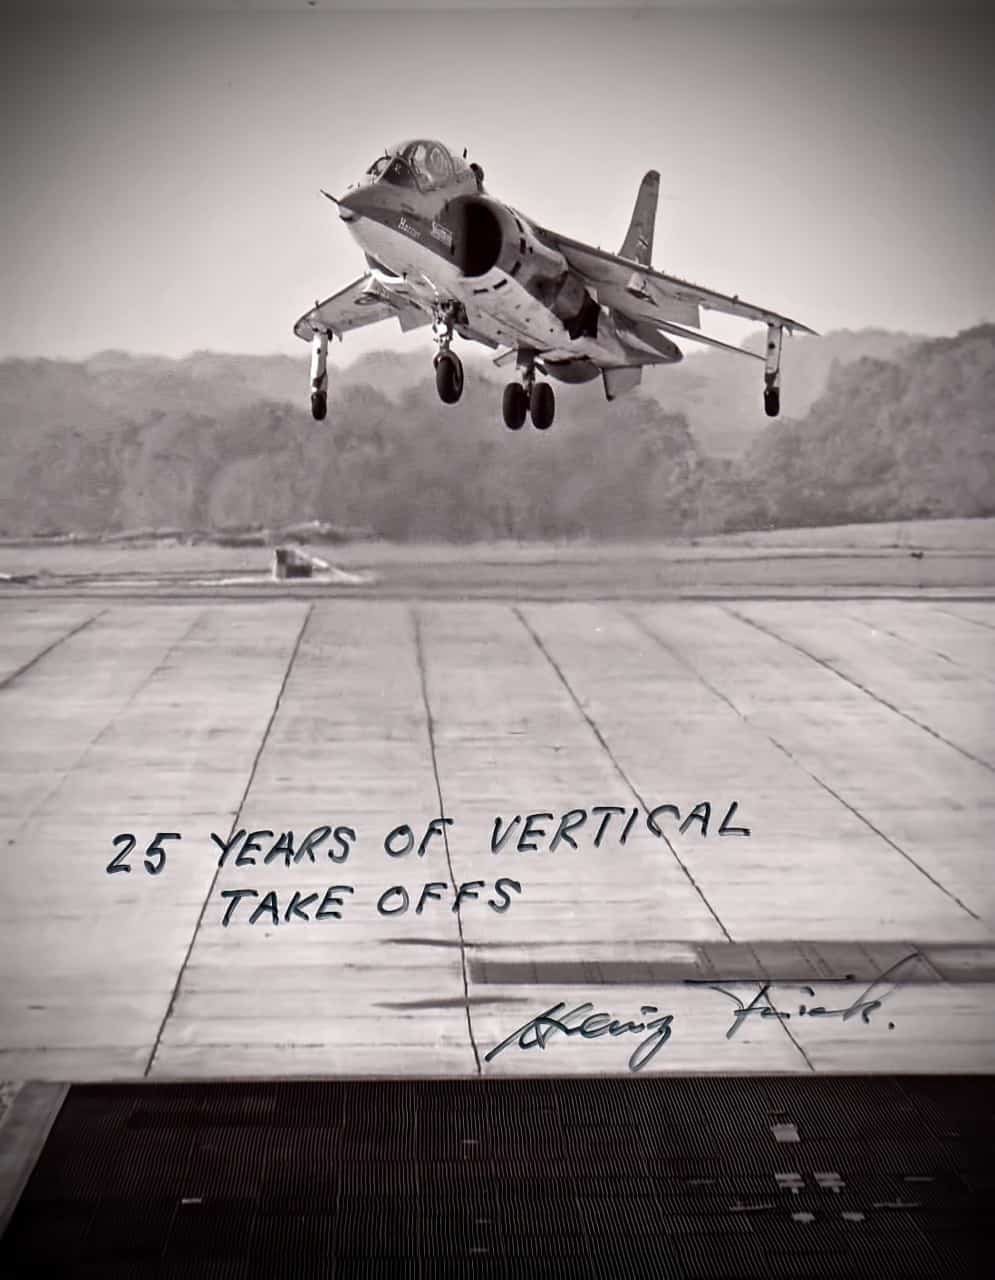 Chronology of Test Pilots - Dunsfold Airfield History Society